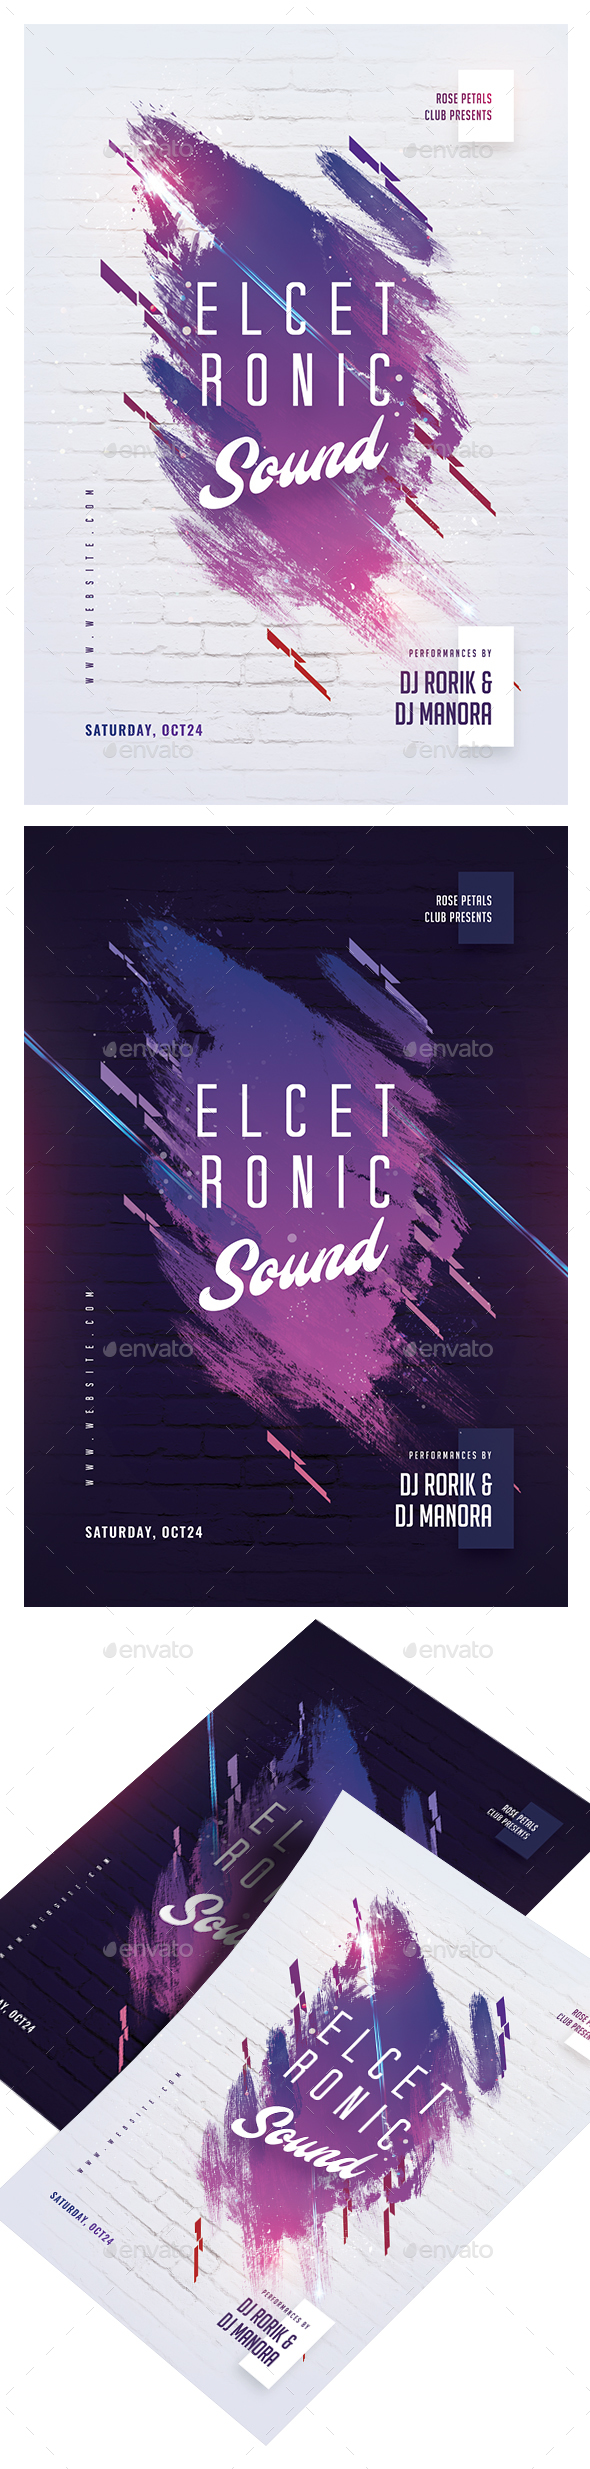 Electronic Sound Party Flyer - Clubs & Parties Events